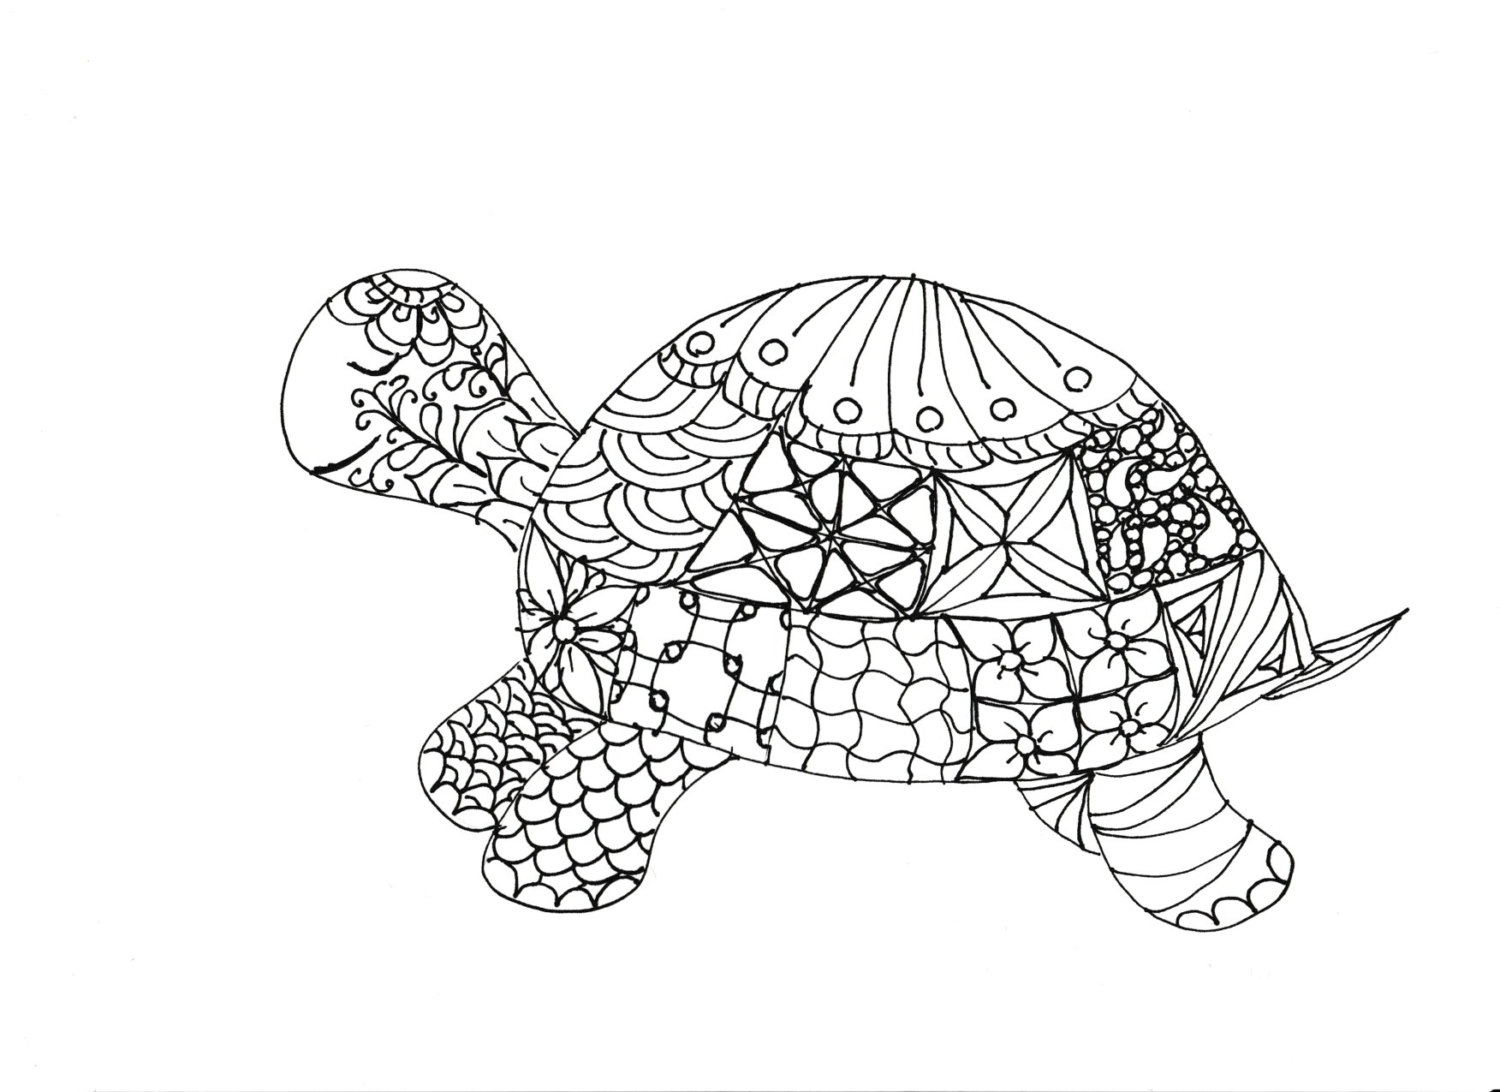 1500x1092 Fresh Tortoise Page To Color Gallery Printable Coloring Sheet